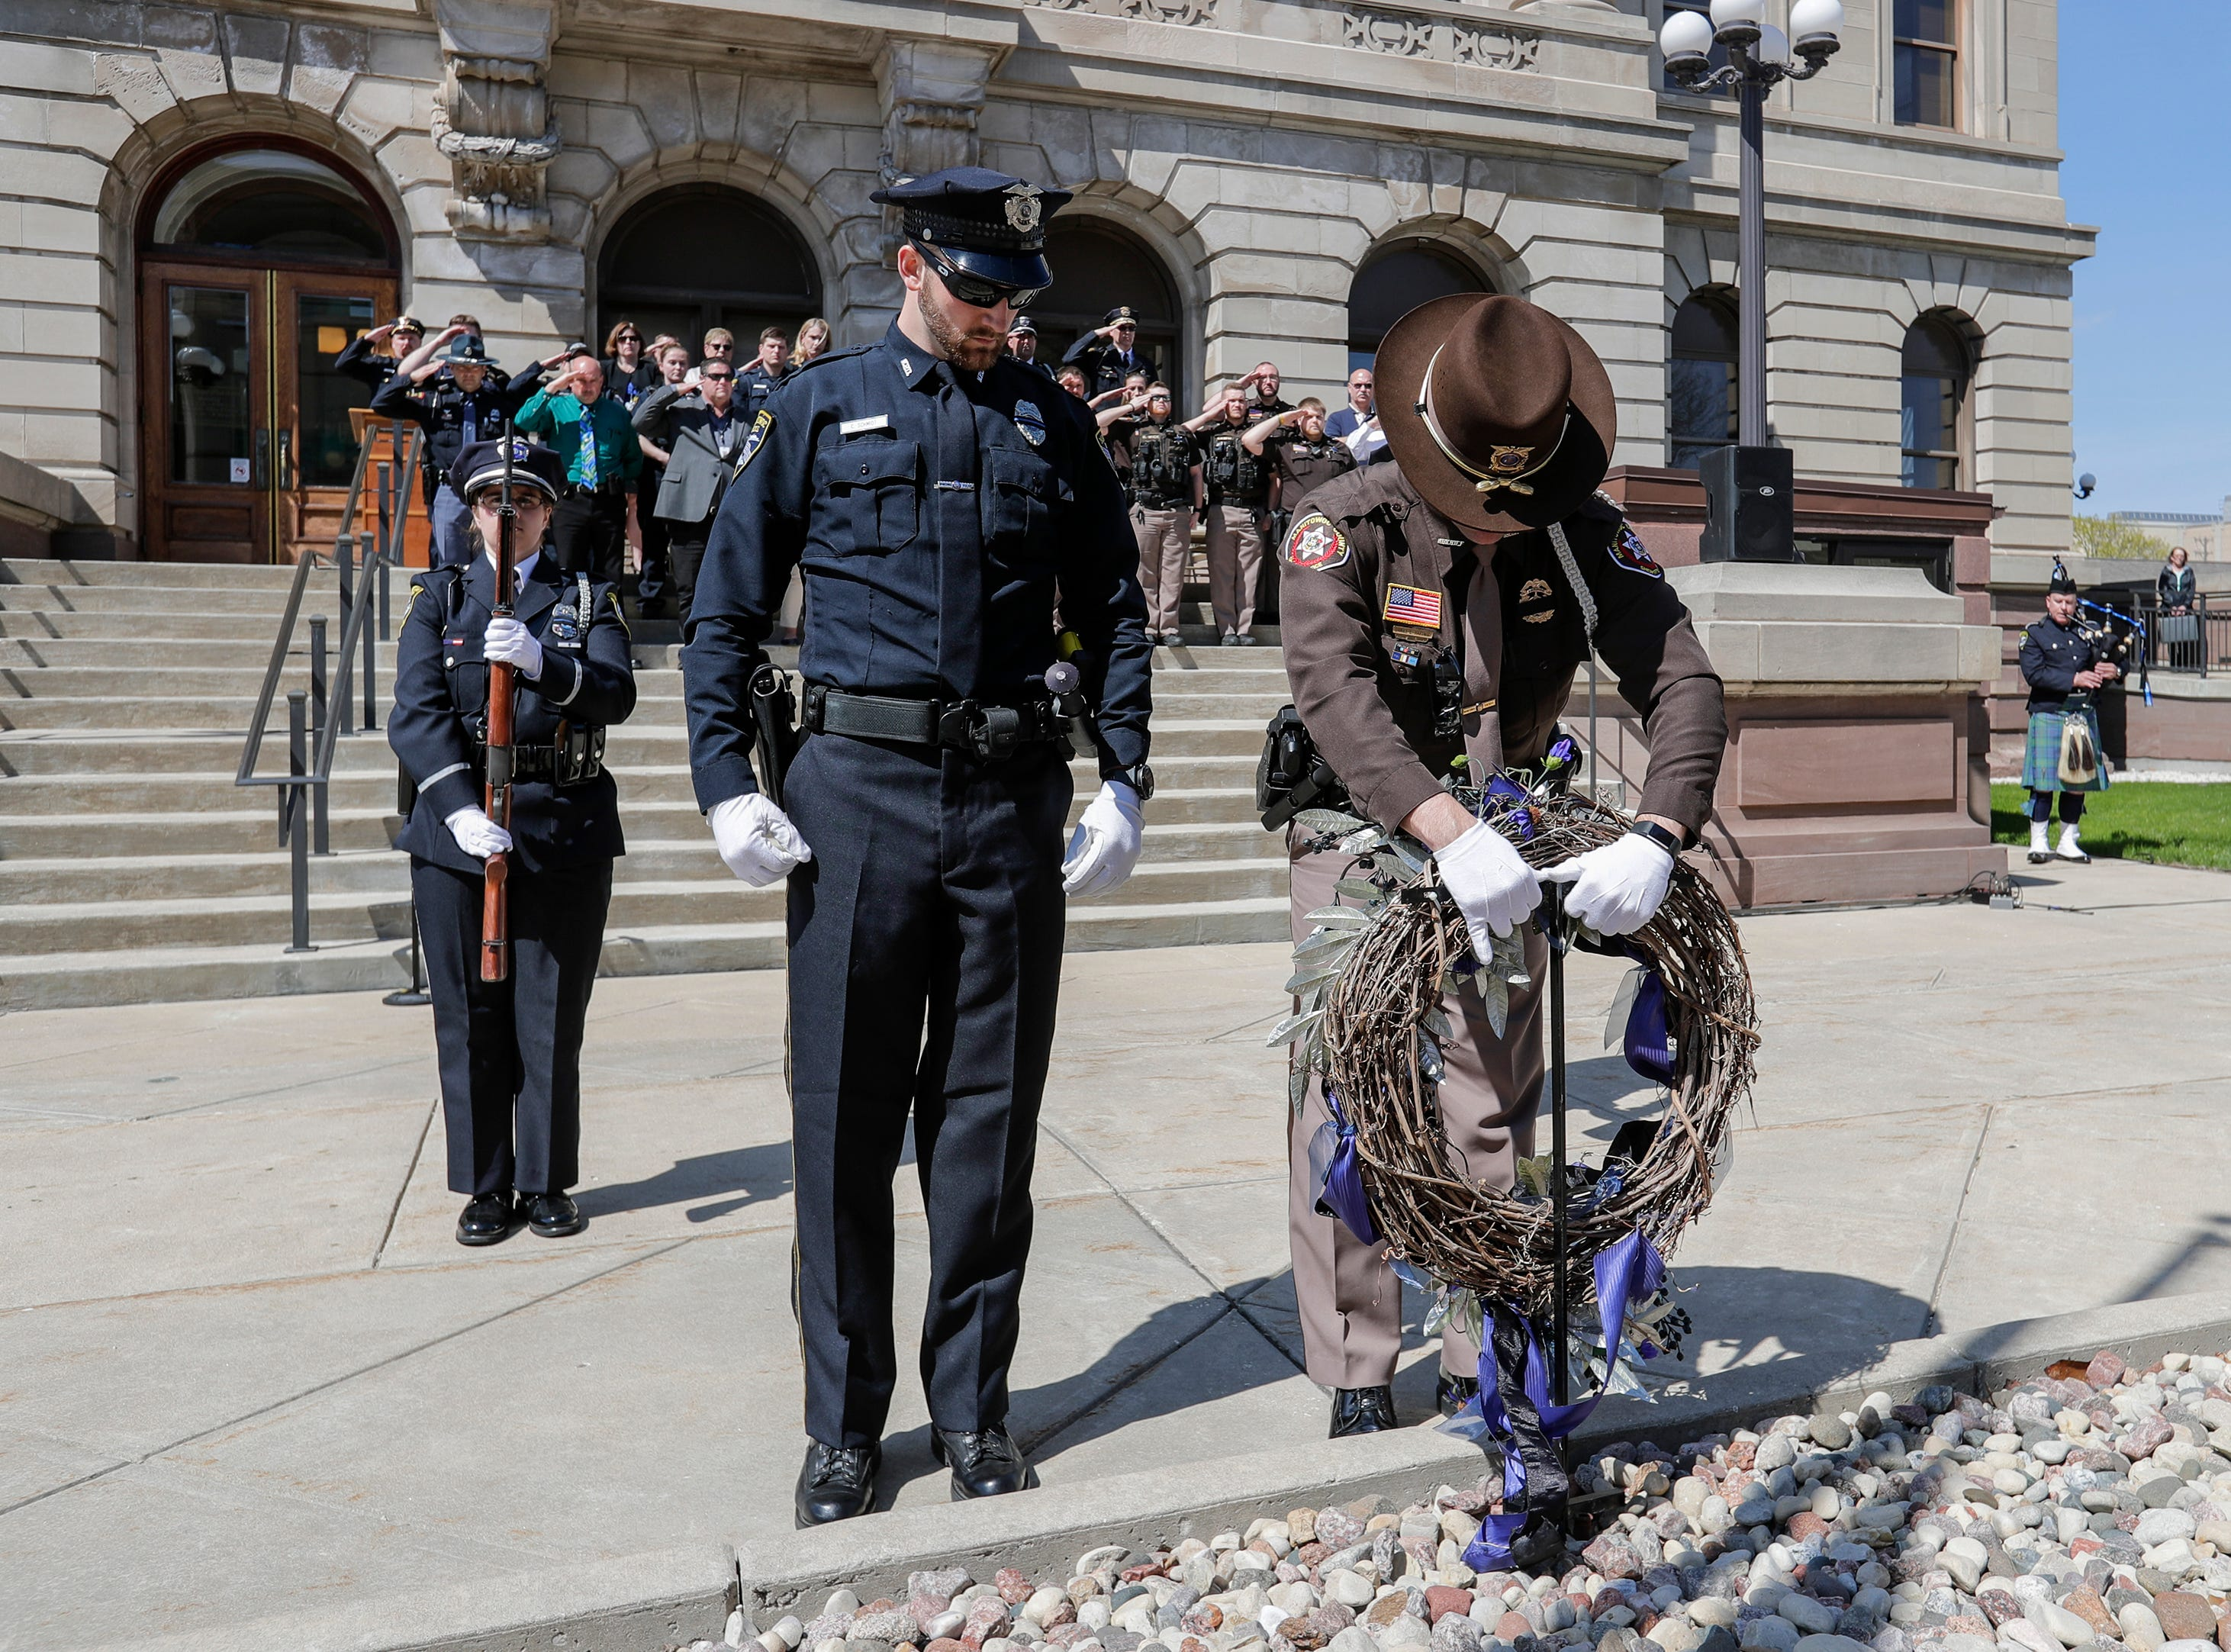 Officers place the wreath in front of the memorial during the Manitowoc County Peace Officer Memorial Service Wednesday, May 15, 2019, in Manitowoc, Wis. Joshua Clark/USA TODAY NETWORK-Wisconsin